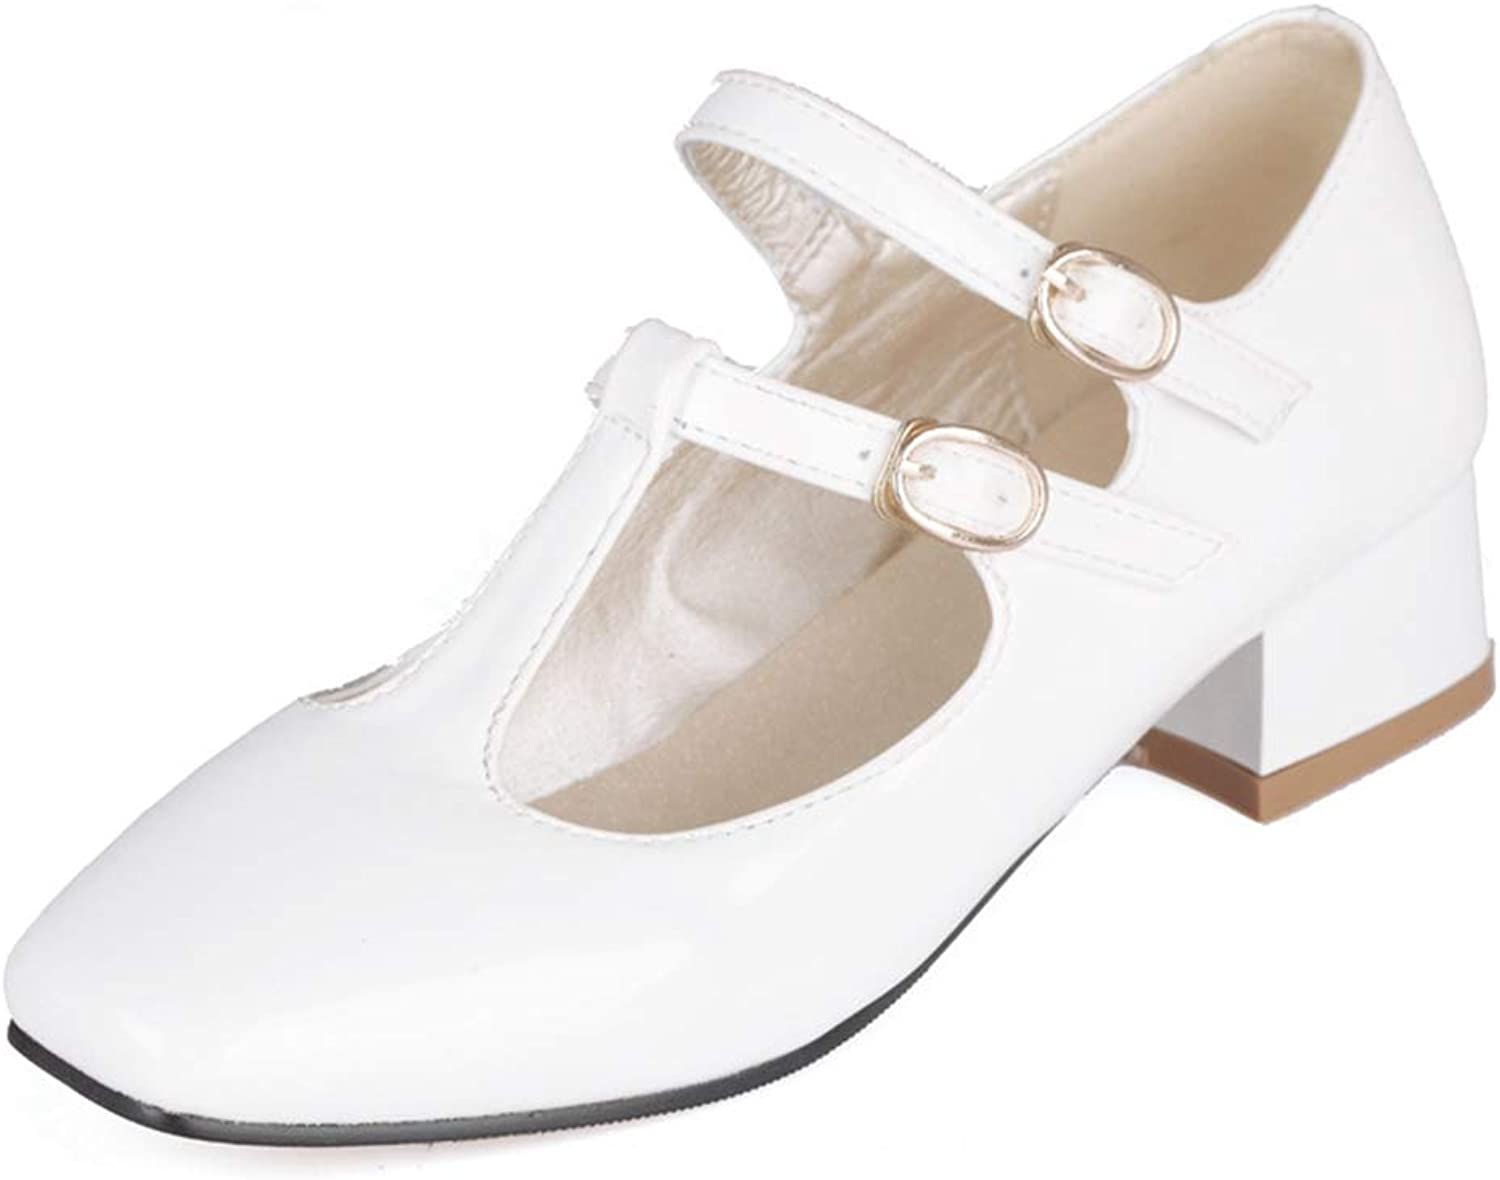 CYBLING Women's Classic T-Strap Mary Jane Pumps Low Heel Square Toe Oxfords Dress shoes